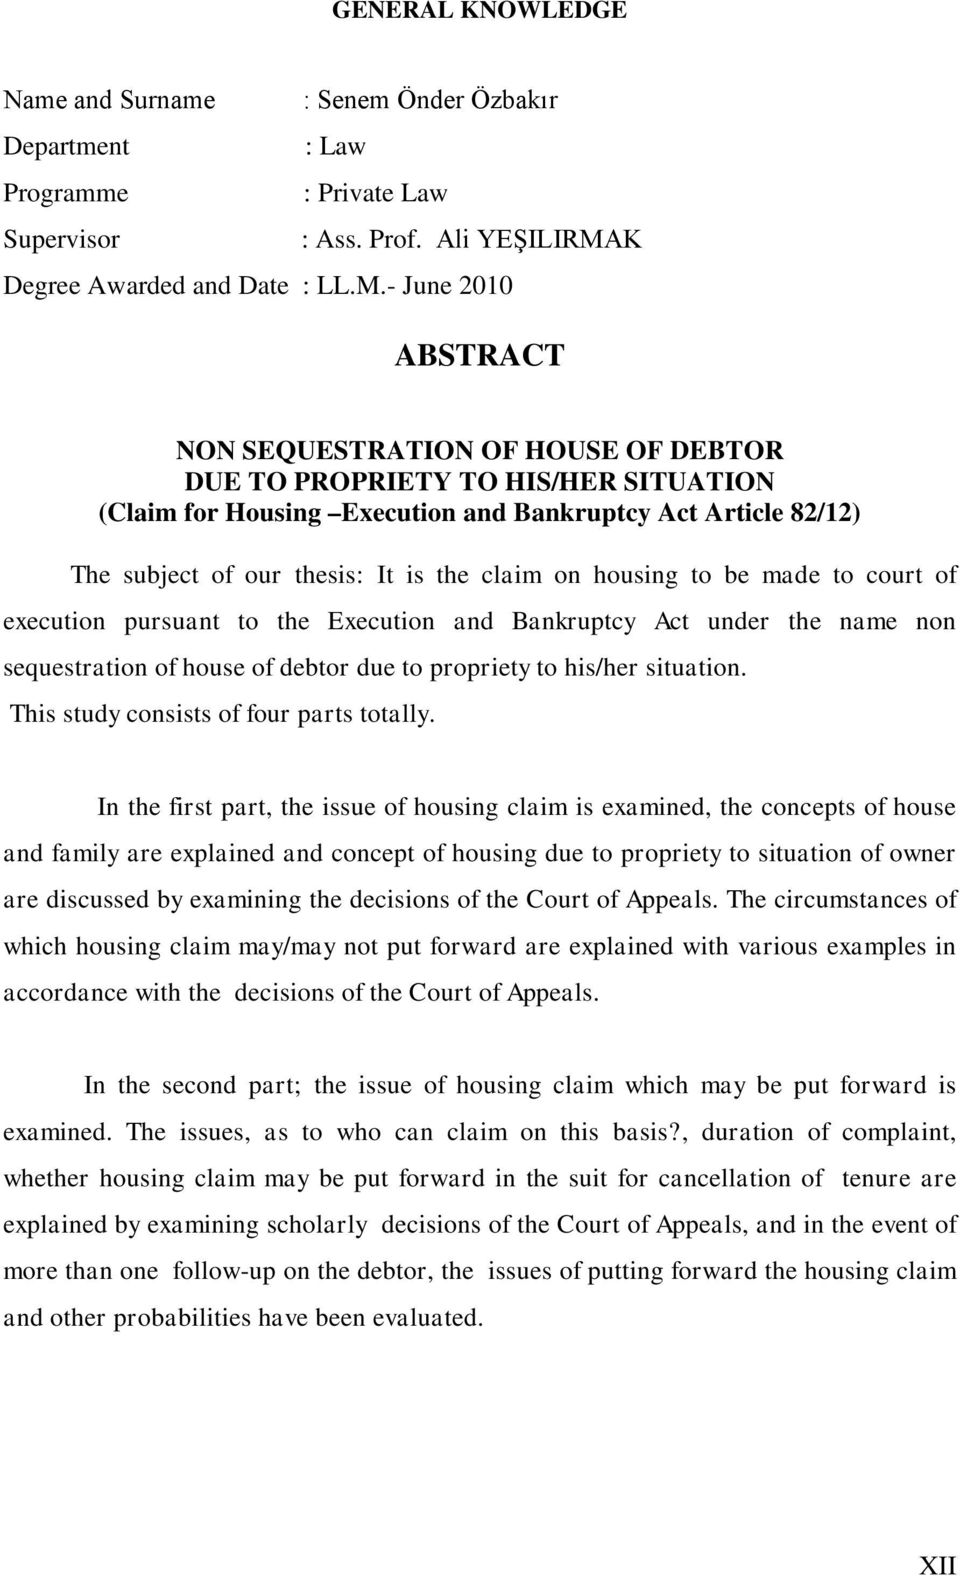 - June 2010 ABSTRACT NON SEQUESTRATION OF HOUSE OF DEBTOR DUE TO PROPRIETY TO HIS/HER SITUATION (Claim for Housing Execution and Bankruptcy Act Article 82/12) The subject of our thesis: It is the